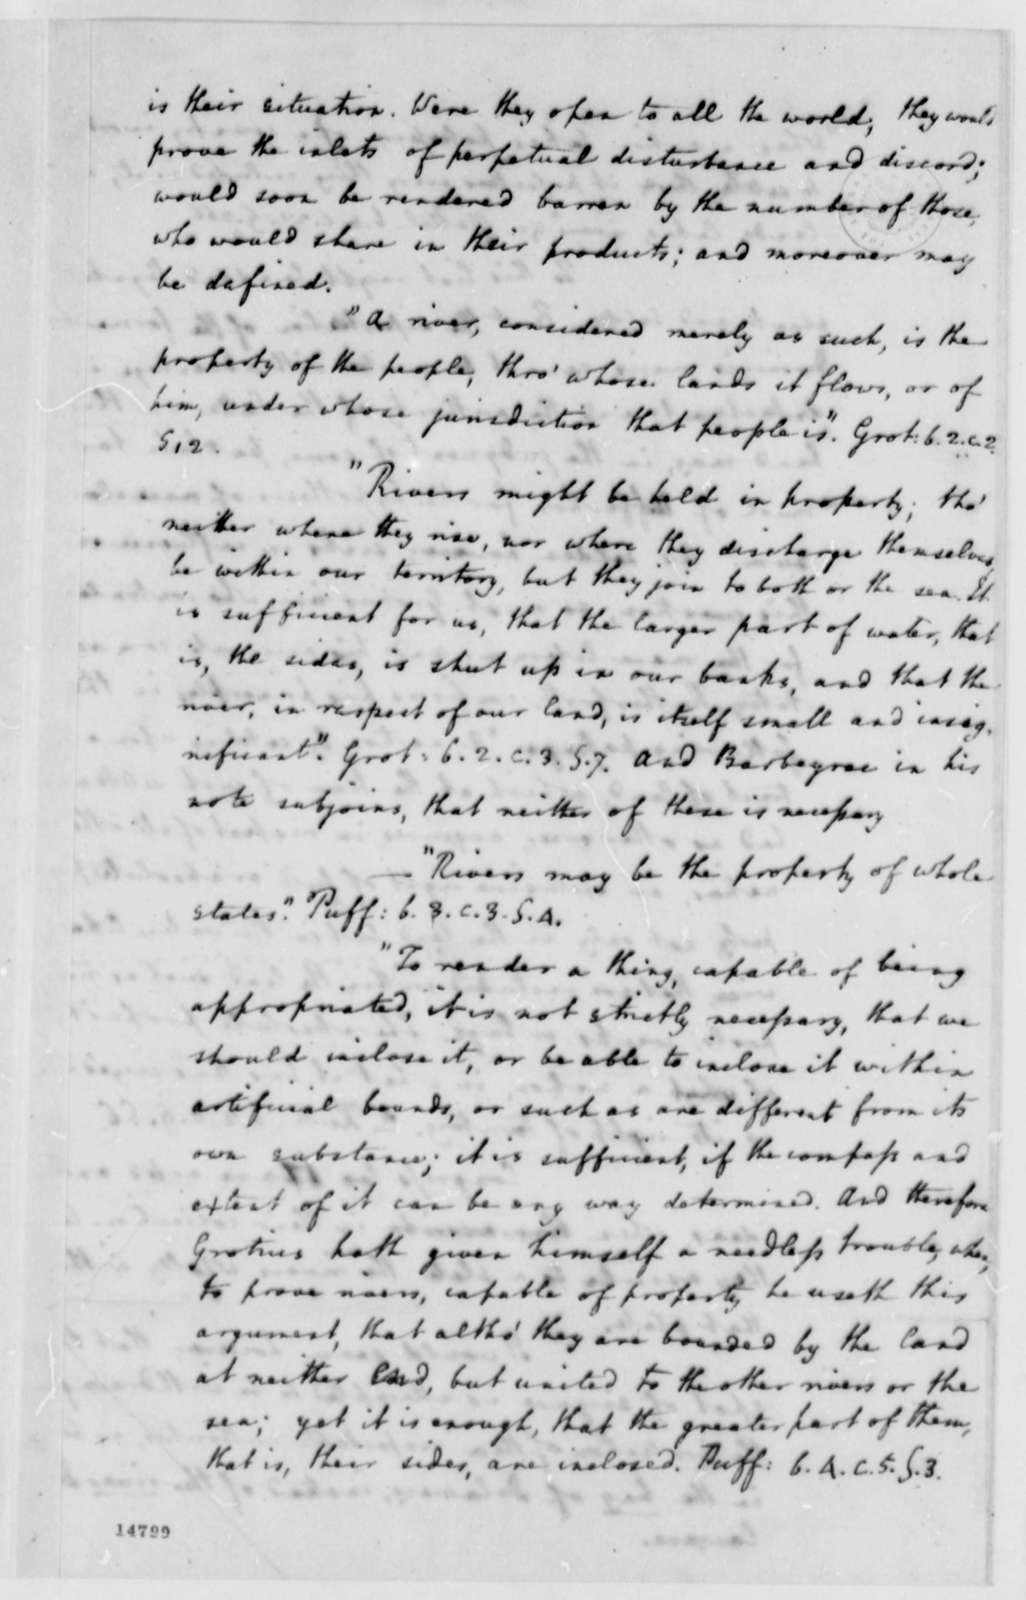 Edmund Randolph to Thomas Jefferson, May 14, 1793, Opinion on Seizure of the British Ship Grange by French Frigate